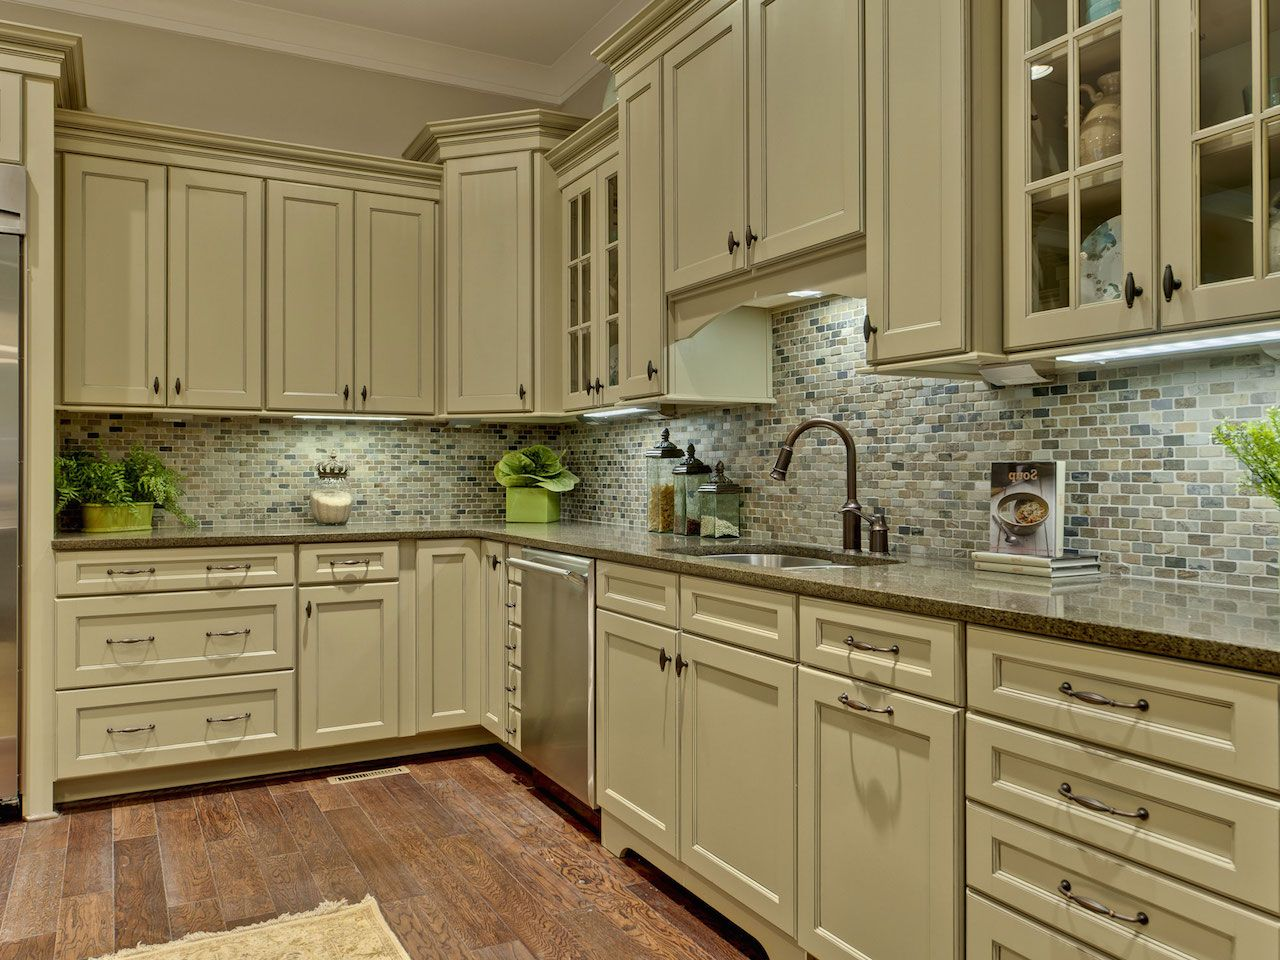 Decor Tips Repaint Kitchen Cabinets With Self Leveling Paint For Painting Kitchen Cabinets And S Beige Kitchen Green Kitchen Cabinets Kitchen Cabinet Design